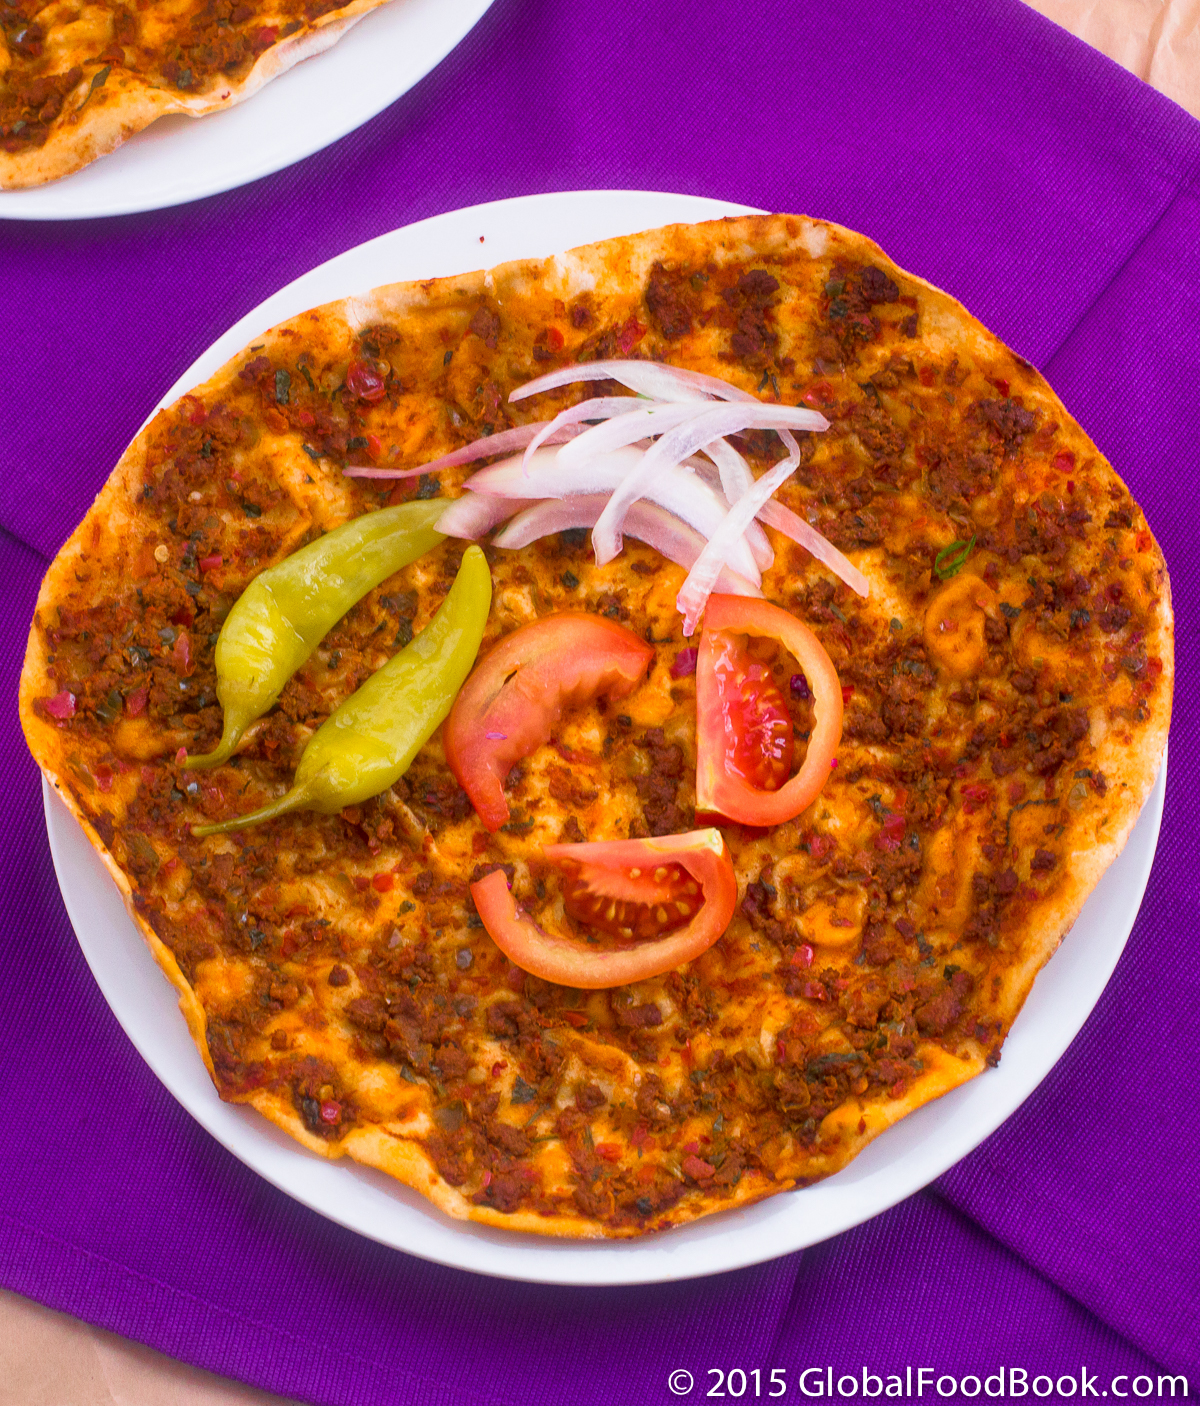 lahmacun turkish pizza